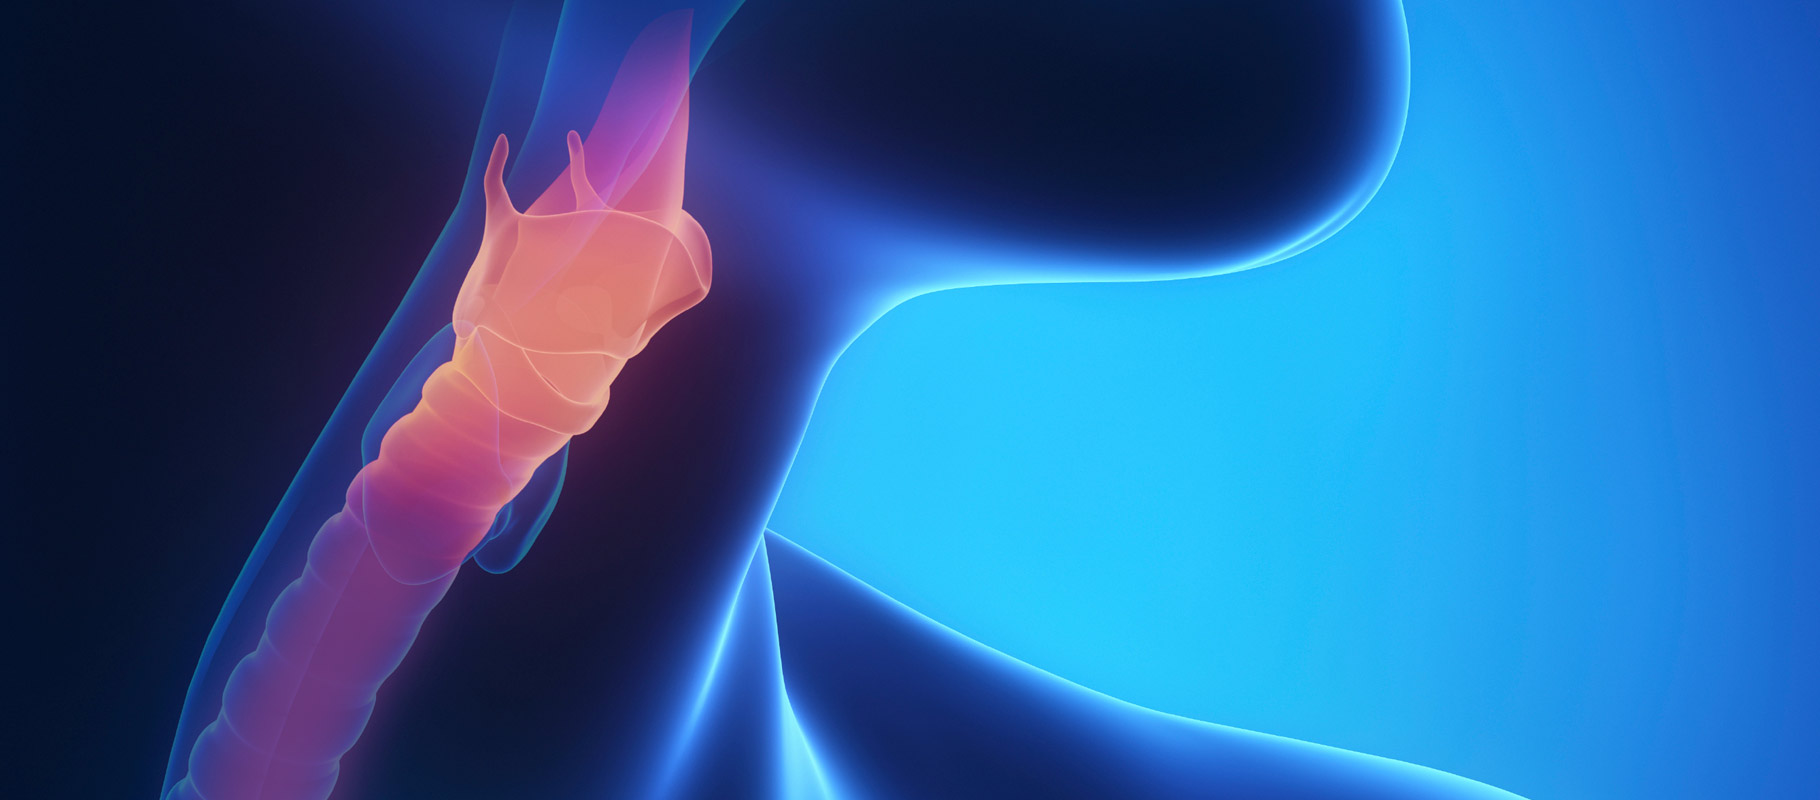 Esophagus Regeneration Successful in Human Patient